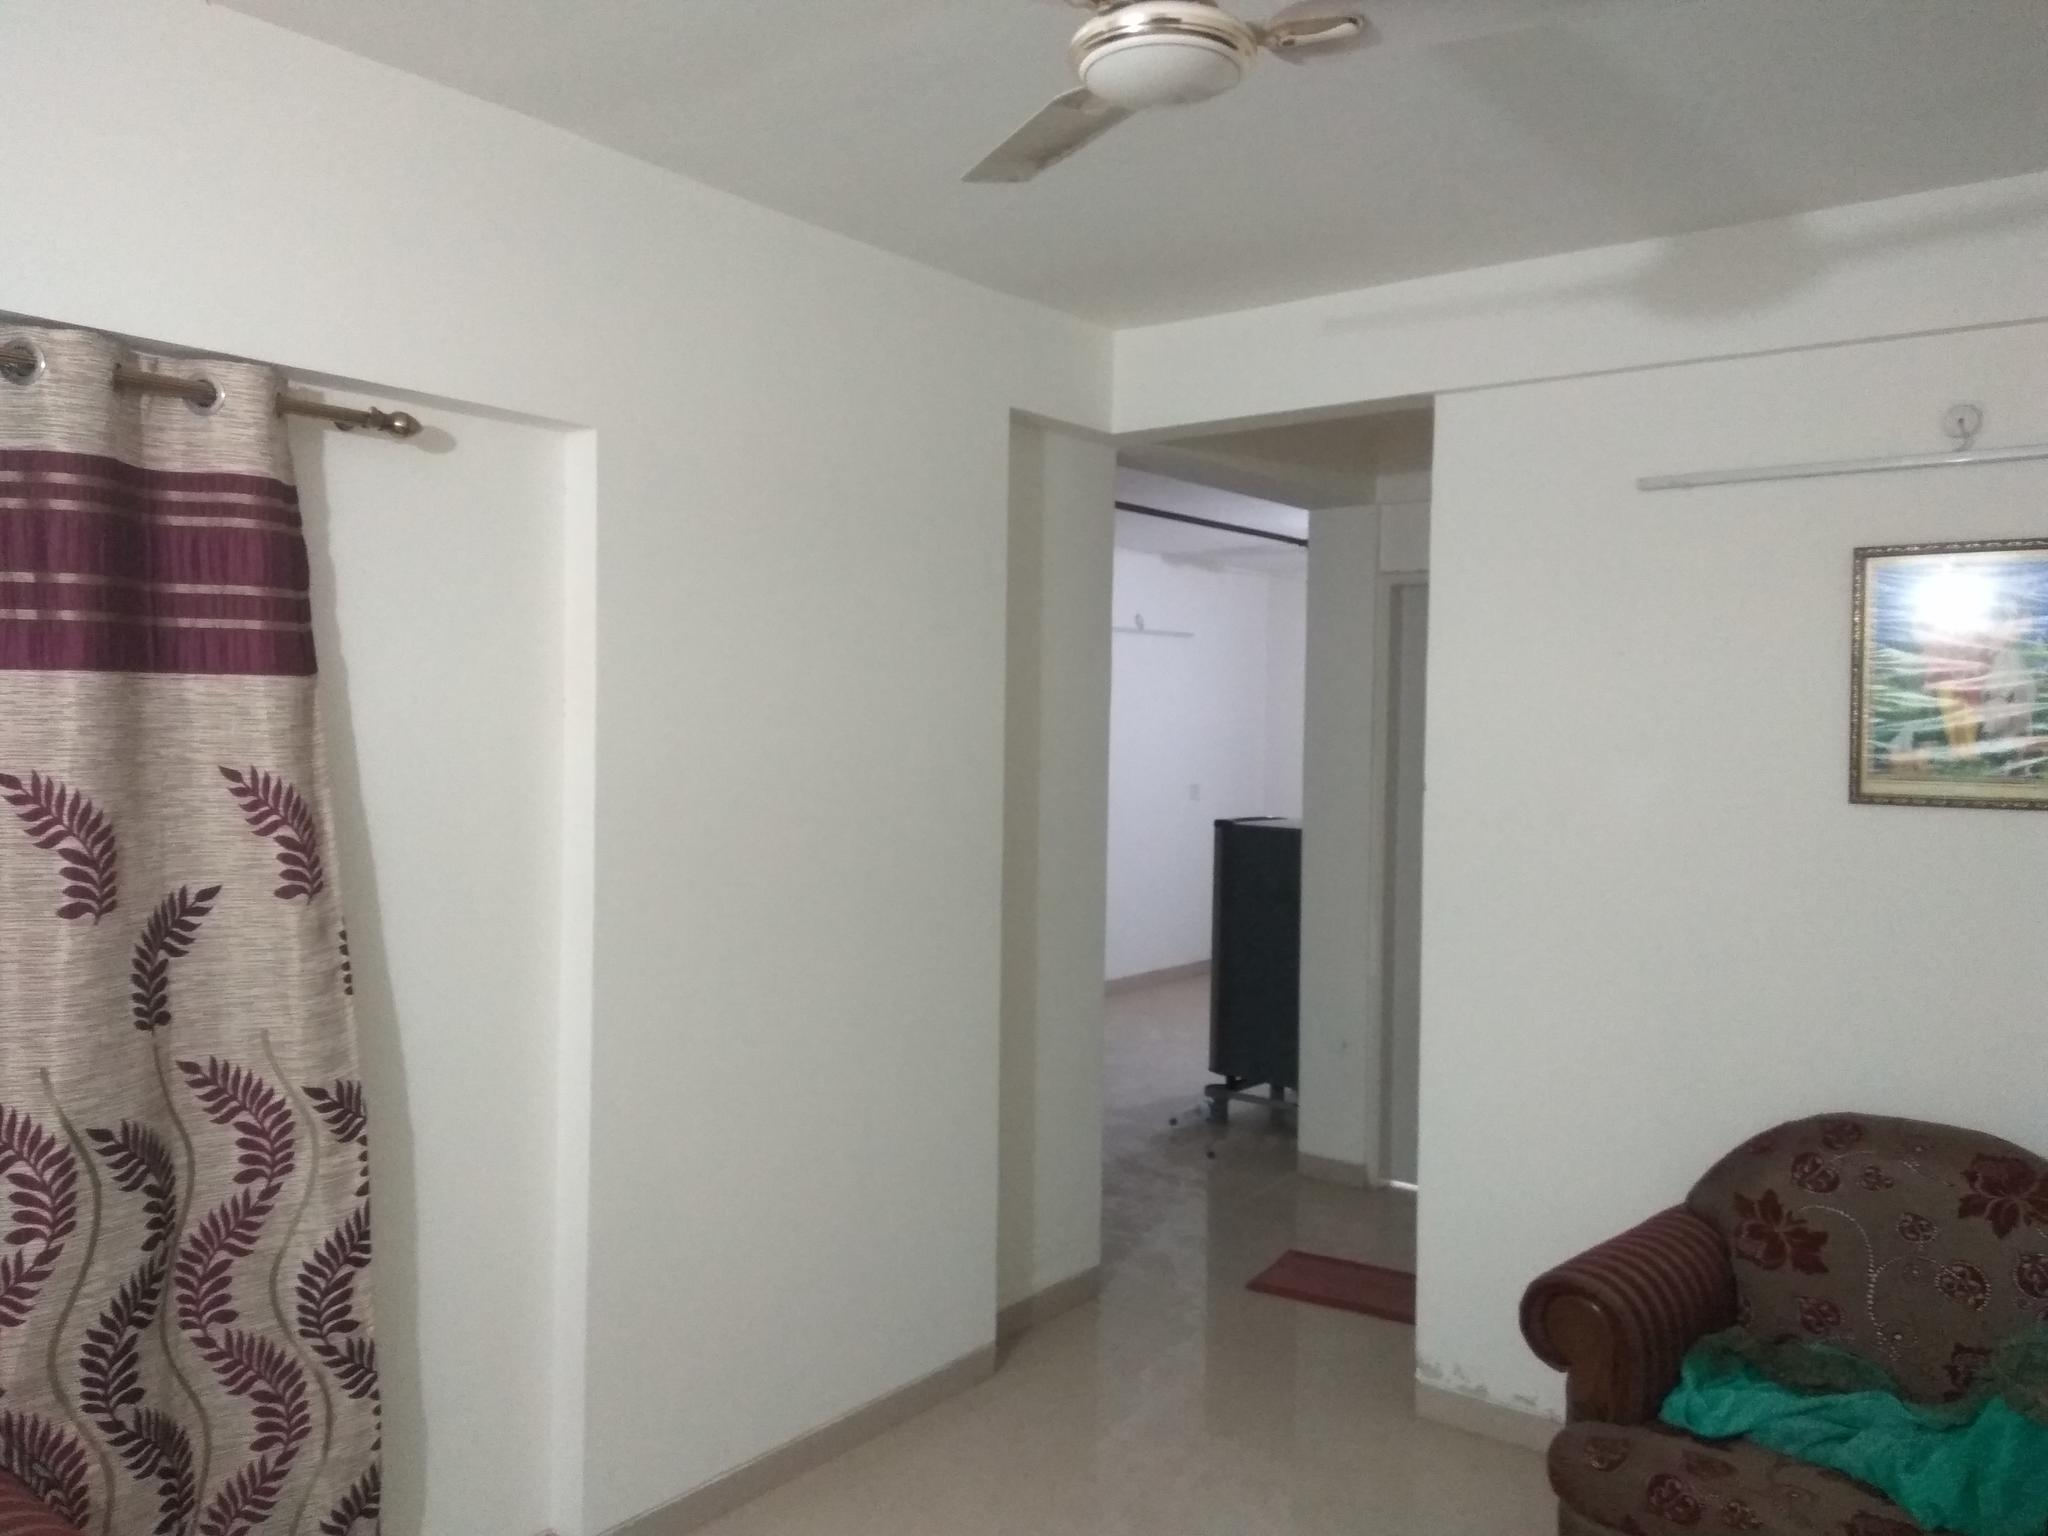 with swimming pool, gym, well maintained 2bhk posh flat for rent 17000 at Rachana Meghsparsh, swavlambi nagar